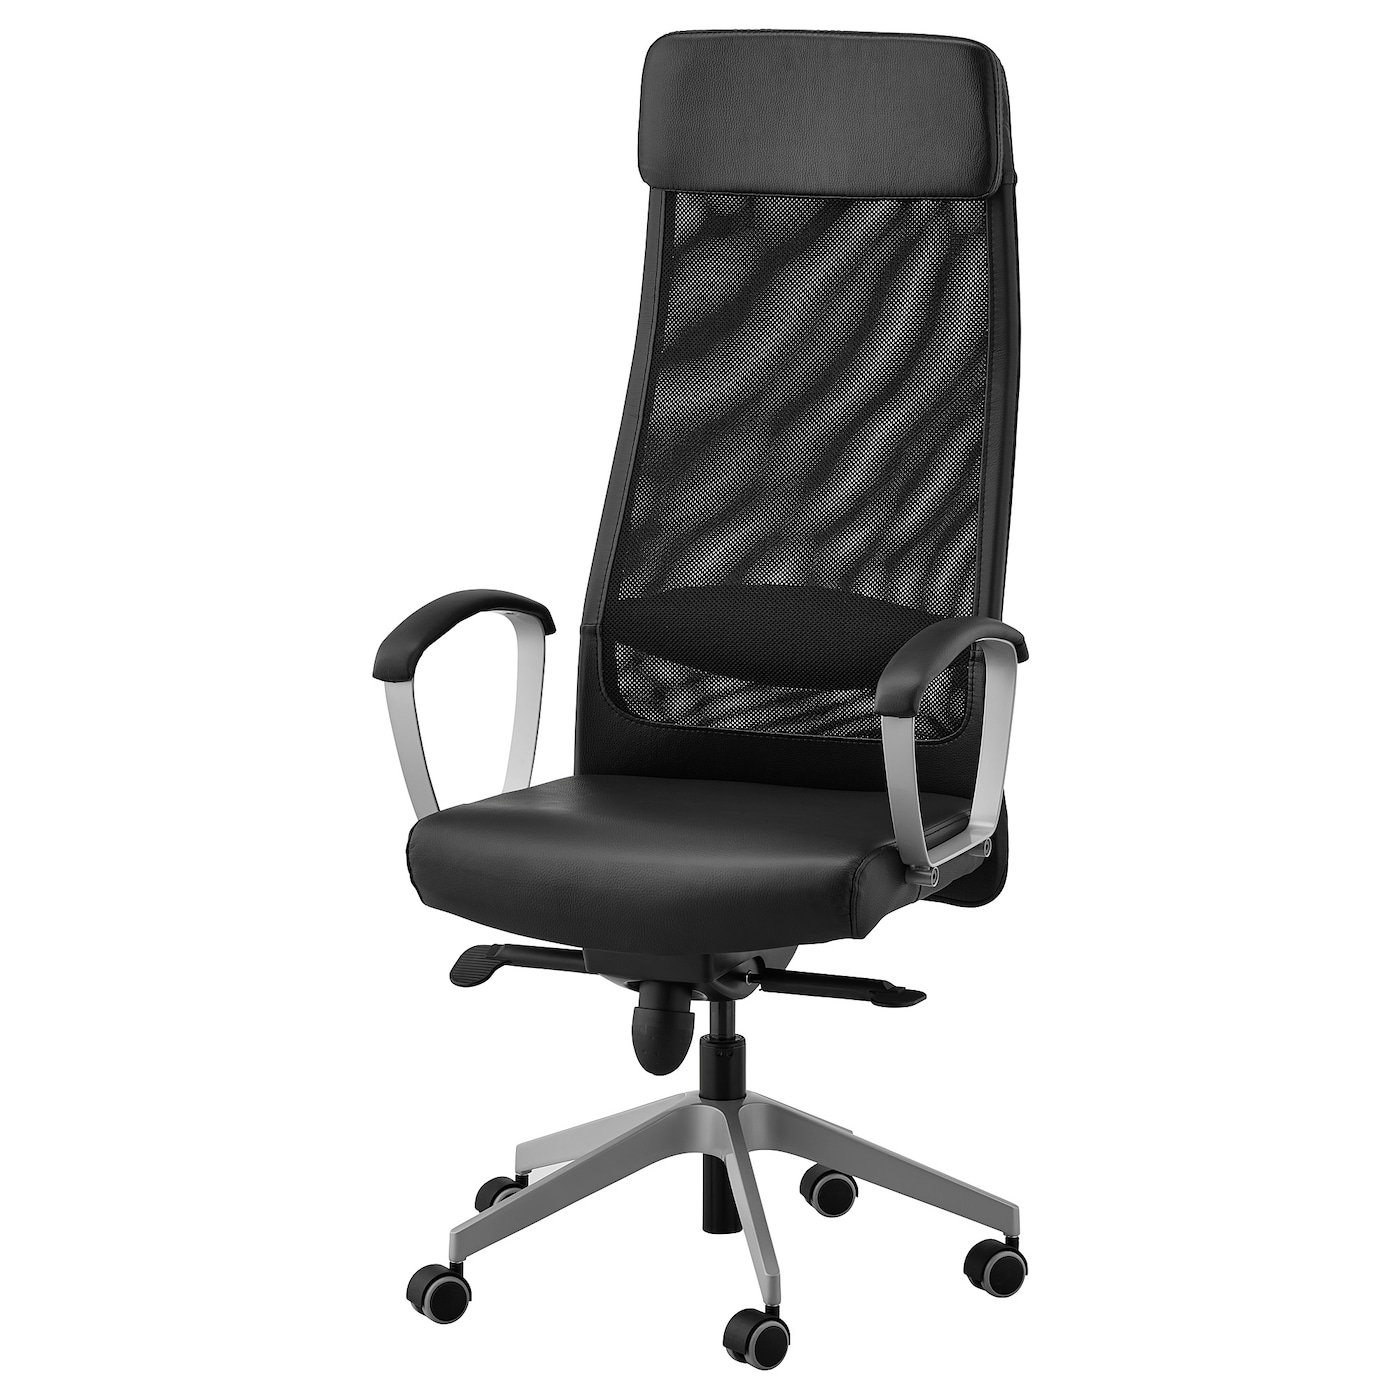 MARKUS Office chair - Glose black